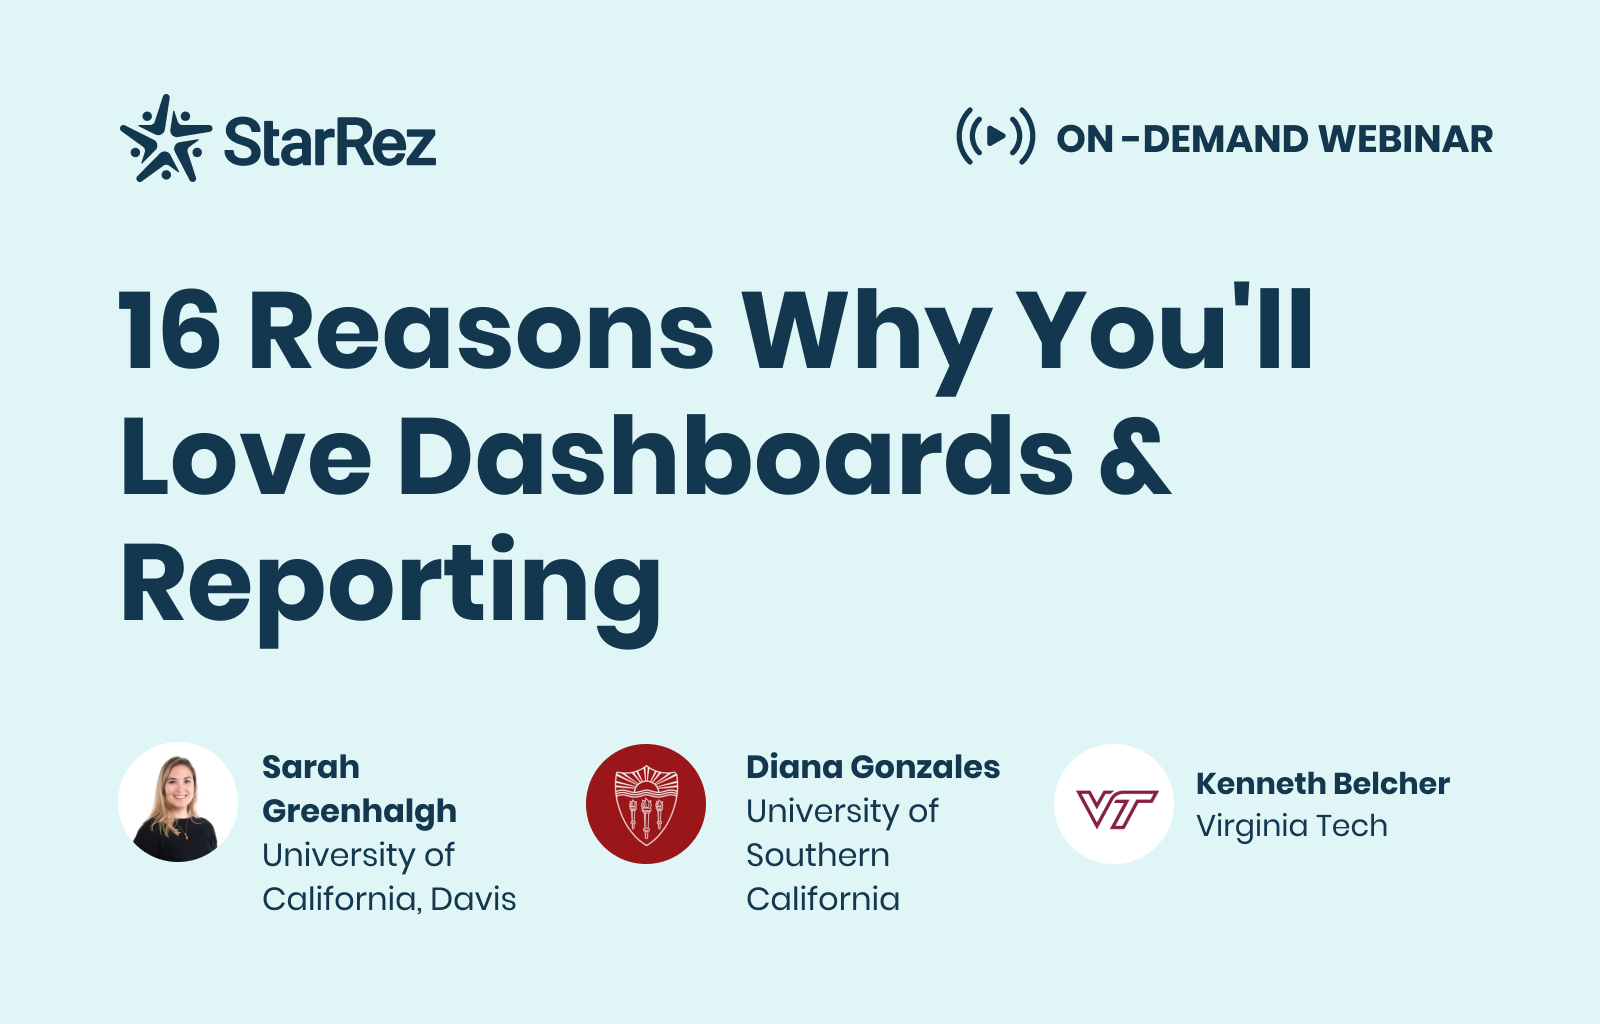 16 Reasons Why You'll Love Dashboards & Reporting